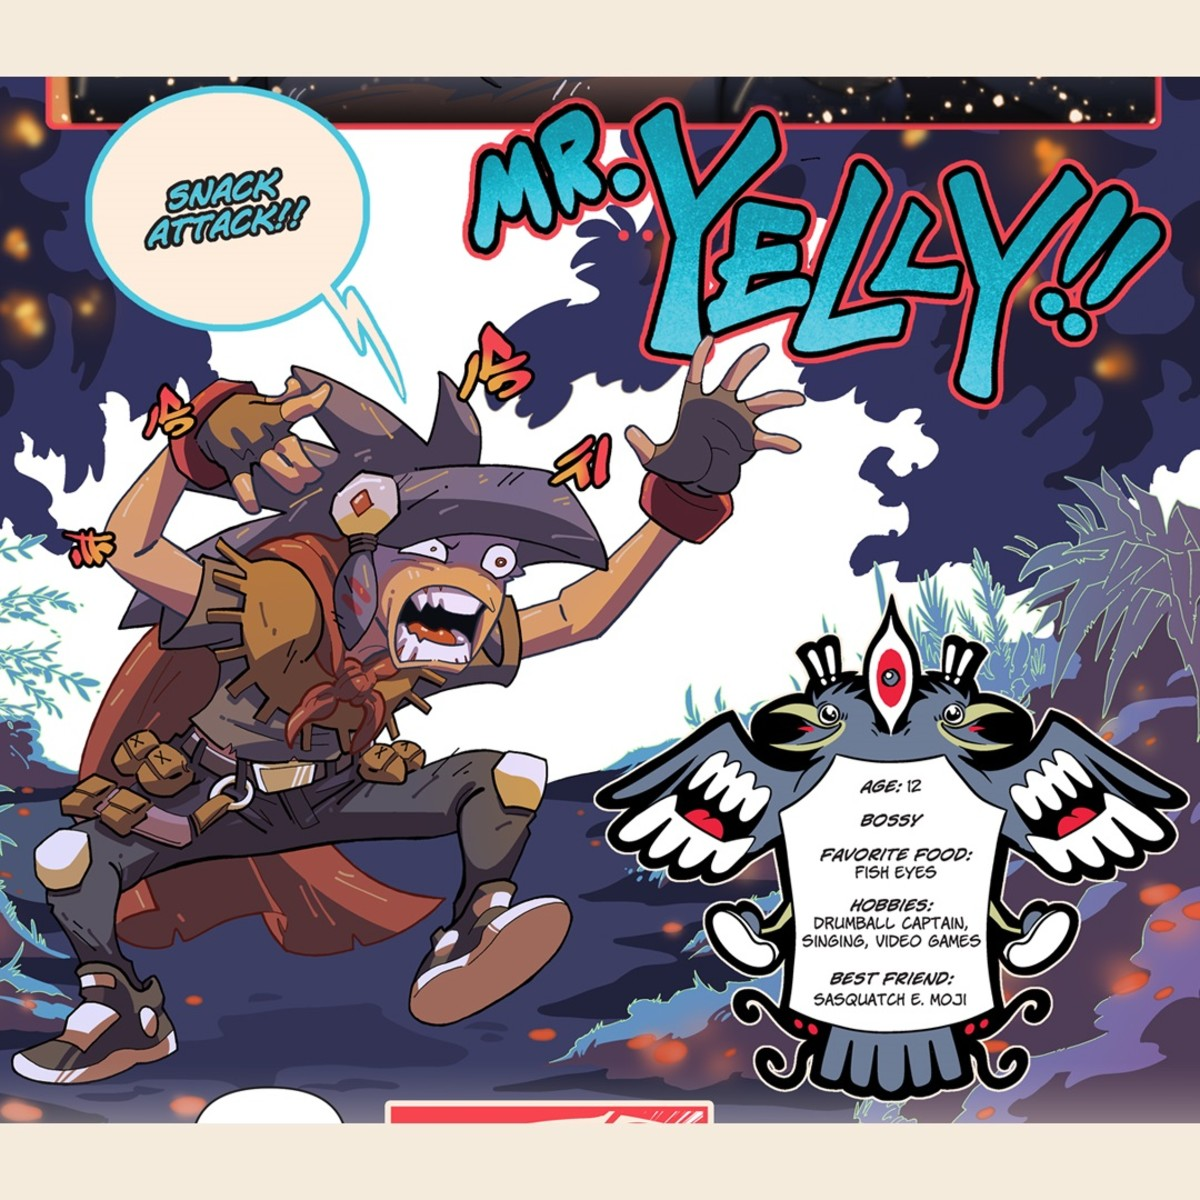 """Mr. Yelly is one of two characters in a new graphic novel, """"Chickaloonies,"""" by writers/illustrators Dimi Macheras and Casey Silver. Mr. Yelly and his friend, Sasquatch E. Moji, go on a quest to save their Ahtna Athabascan village while sharing their culture with the world. Macheras, who is Ahtna Athabascan, based the tale on those told by his grandmother. The book was released Aug. 1, 2021. (Photo courtesy of Dimi Macheras and Casey Silver)"""